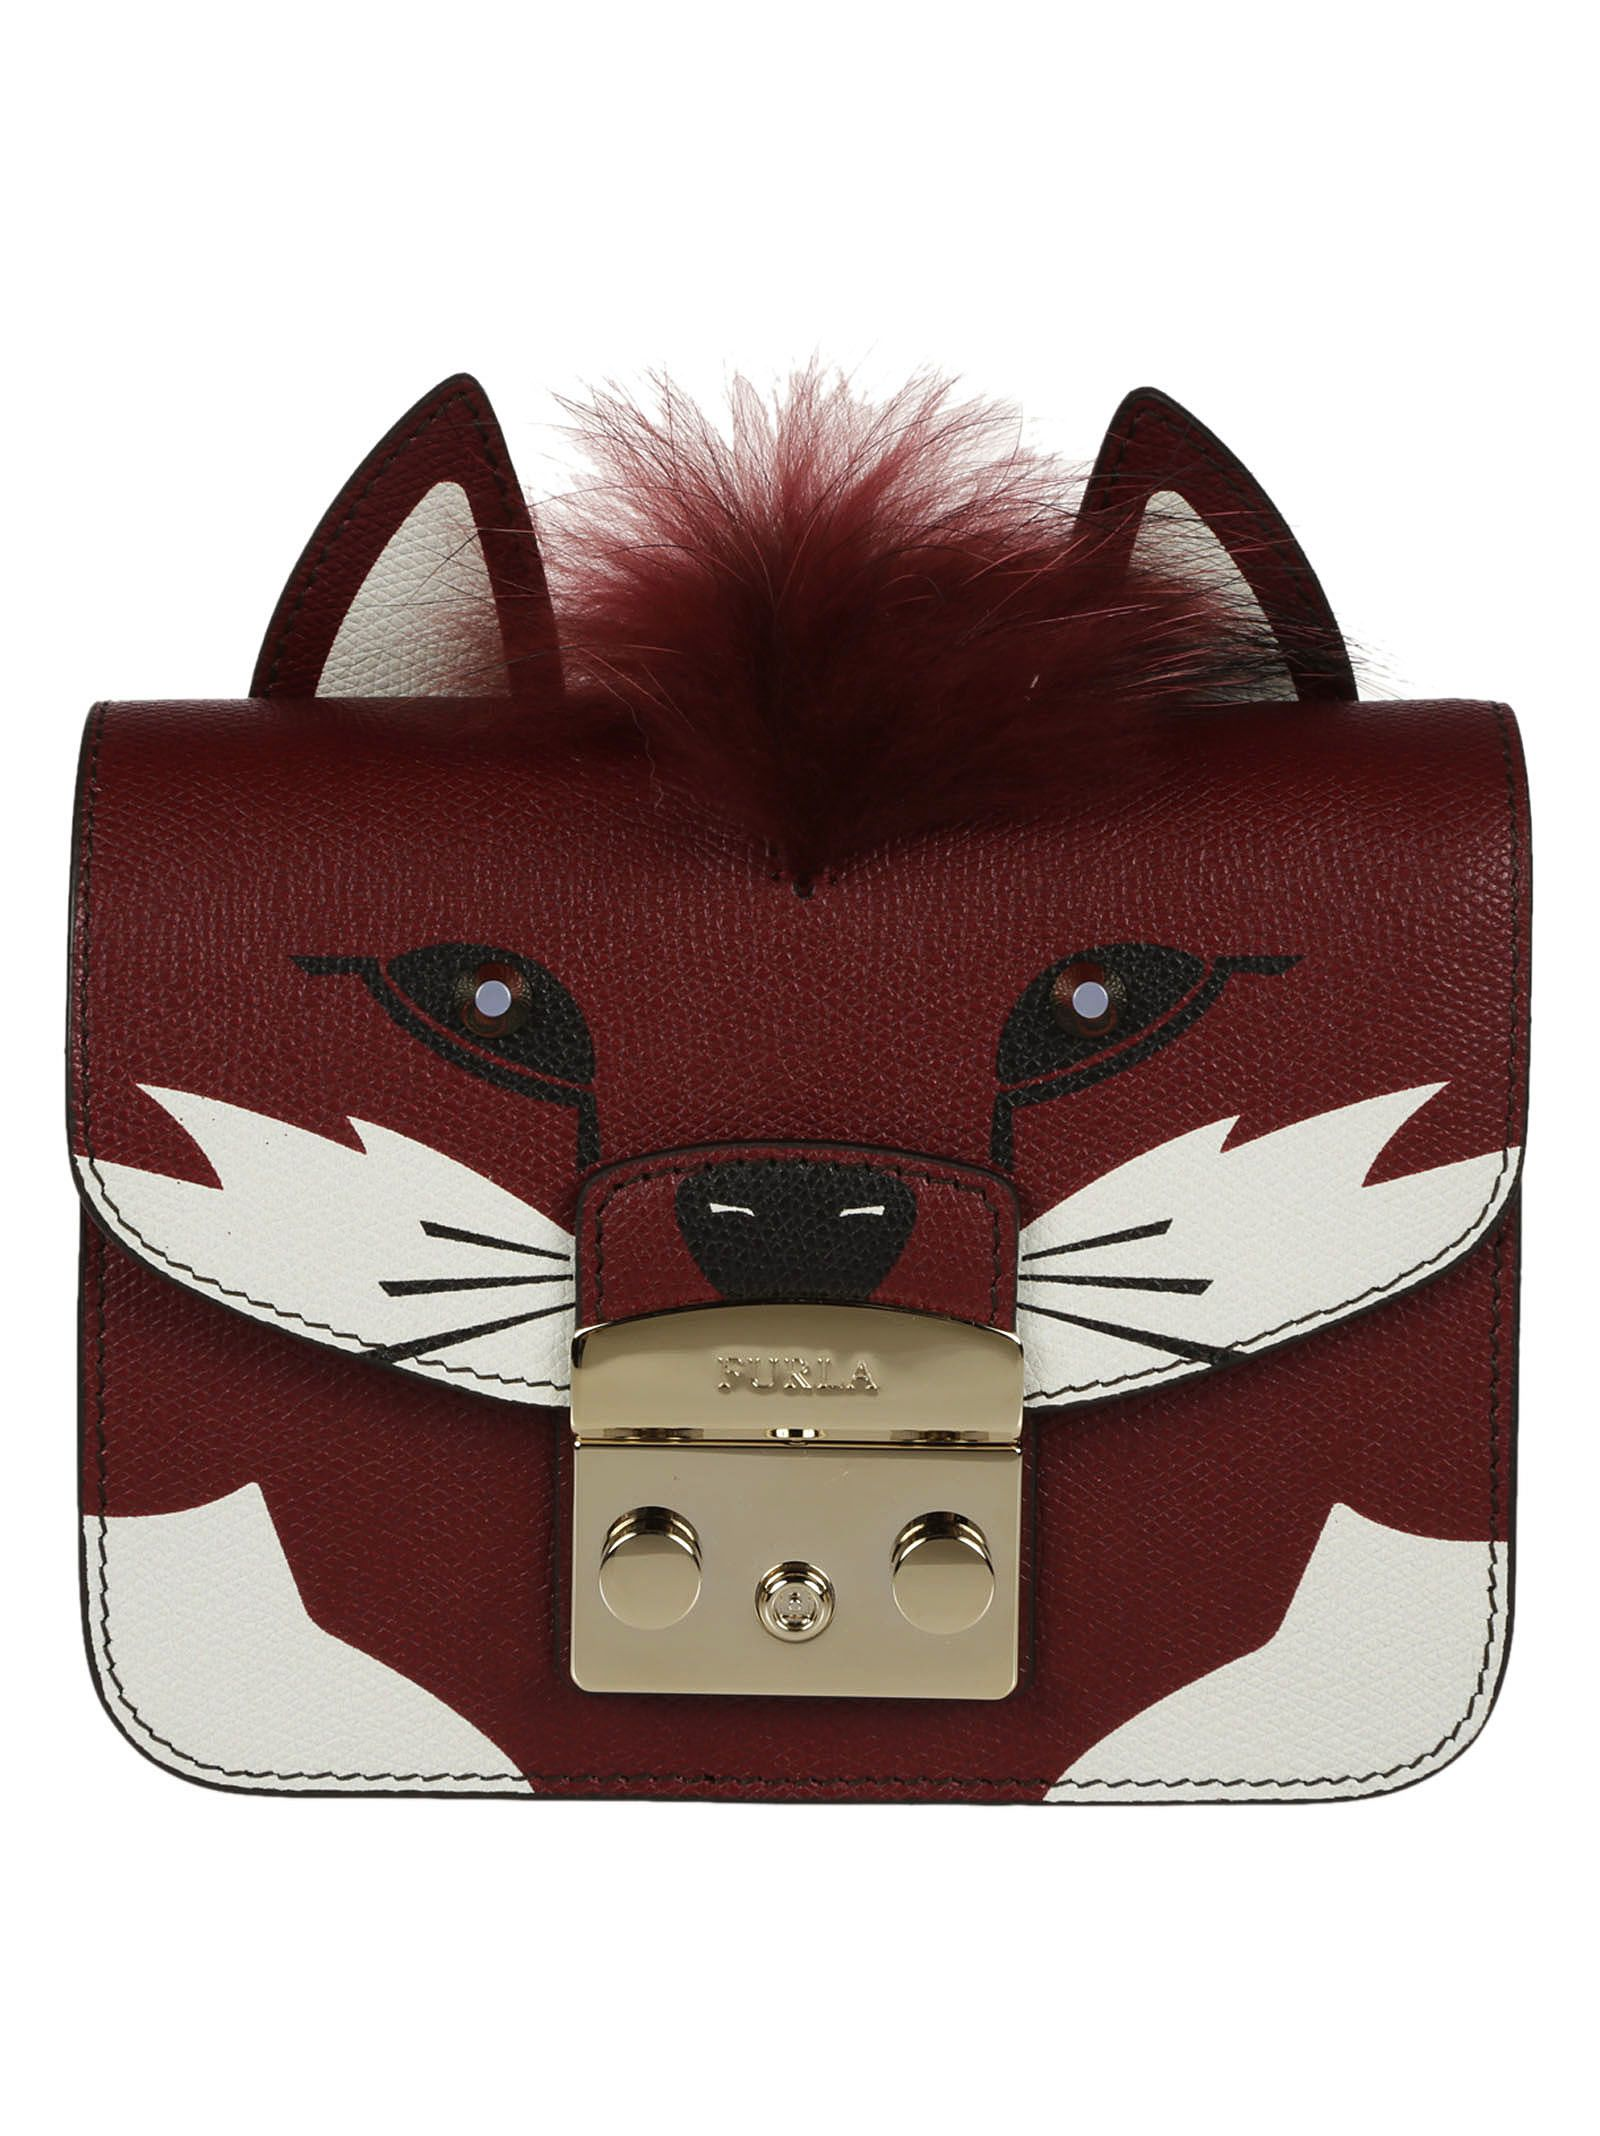 Footlocker Furla Metropolis Cat bag Release Dates For Sale Shop Offer Online With Credit Card Cheap Online uvFrJu1r